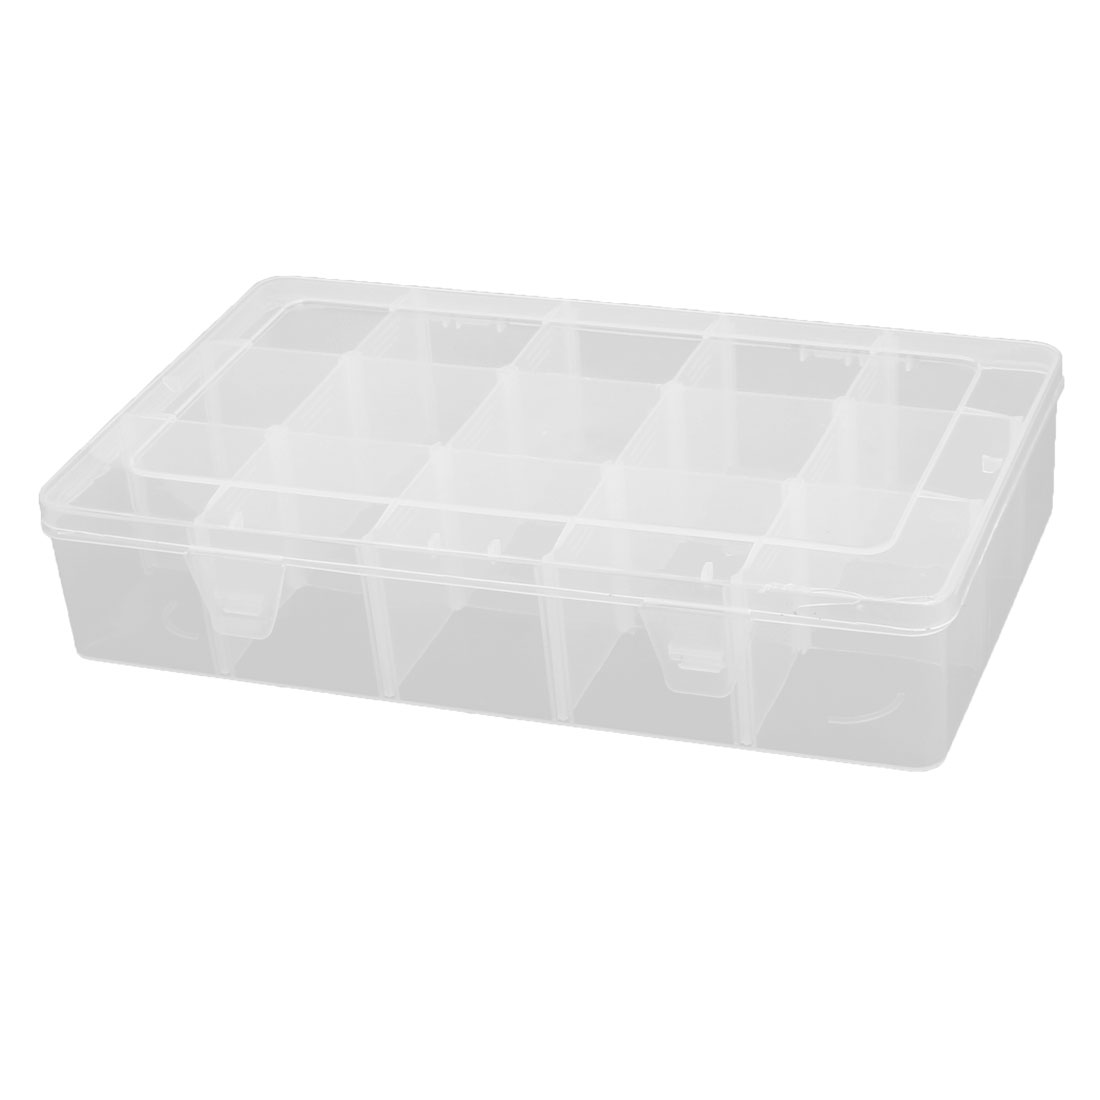 Household Plastic Detachable 15 Slots Sundries Storage Container Box Case Clear